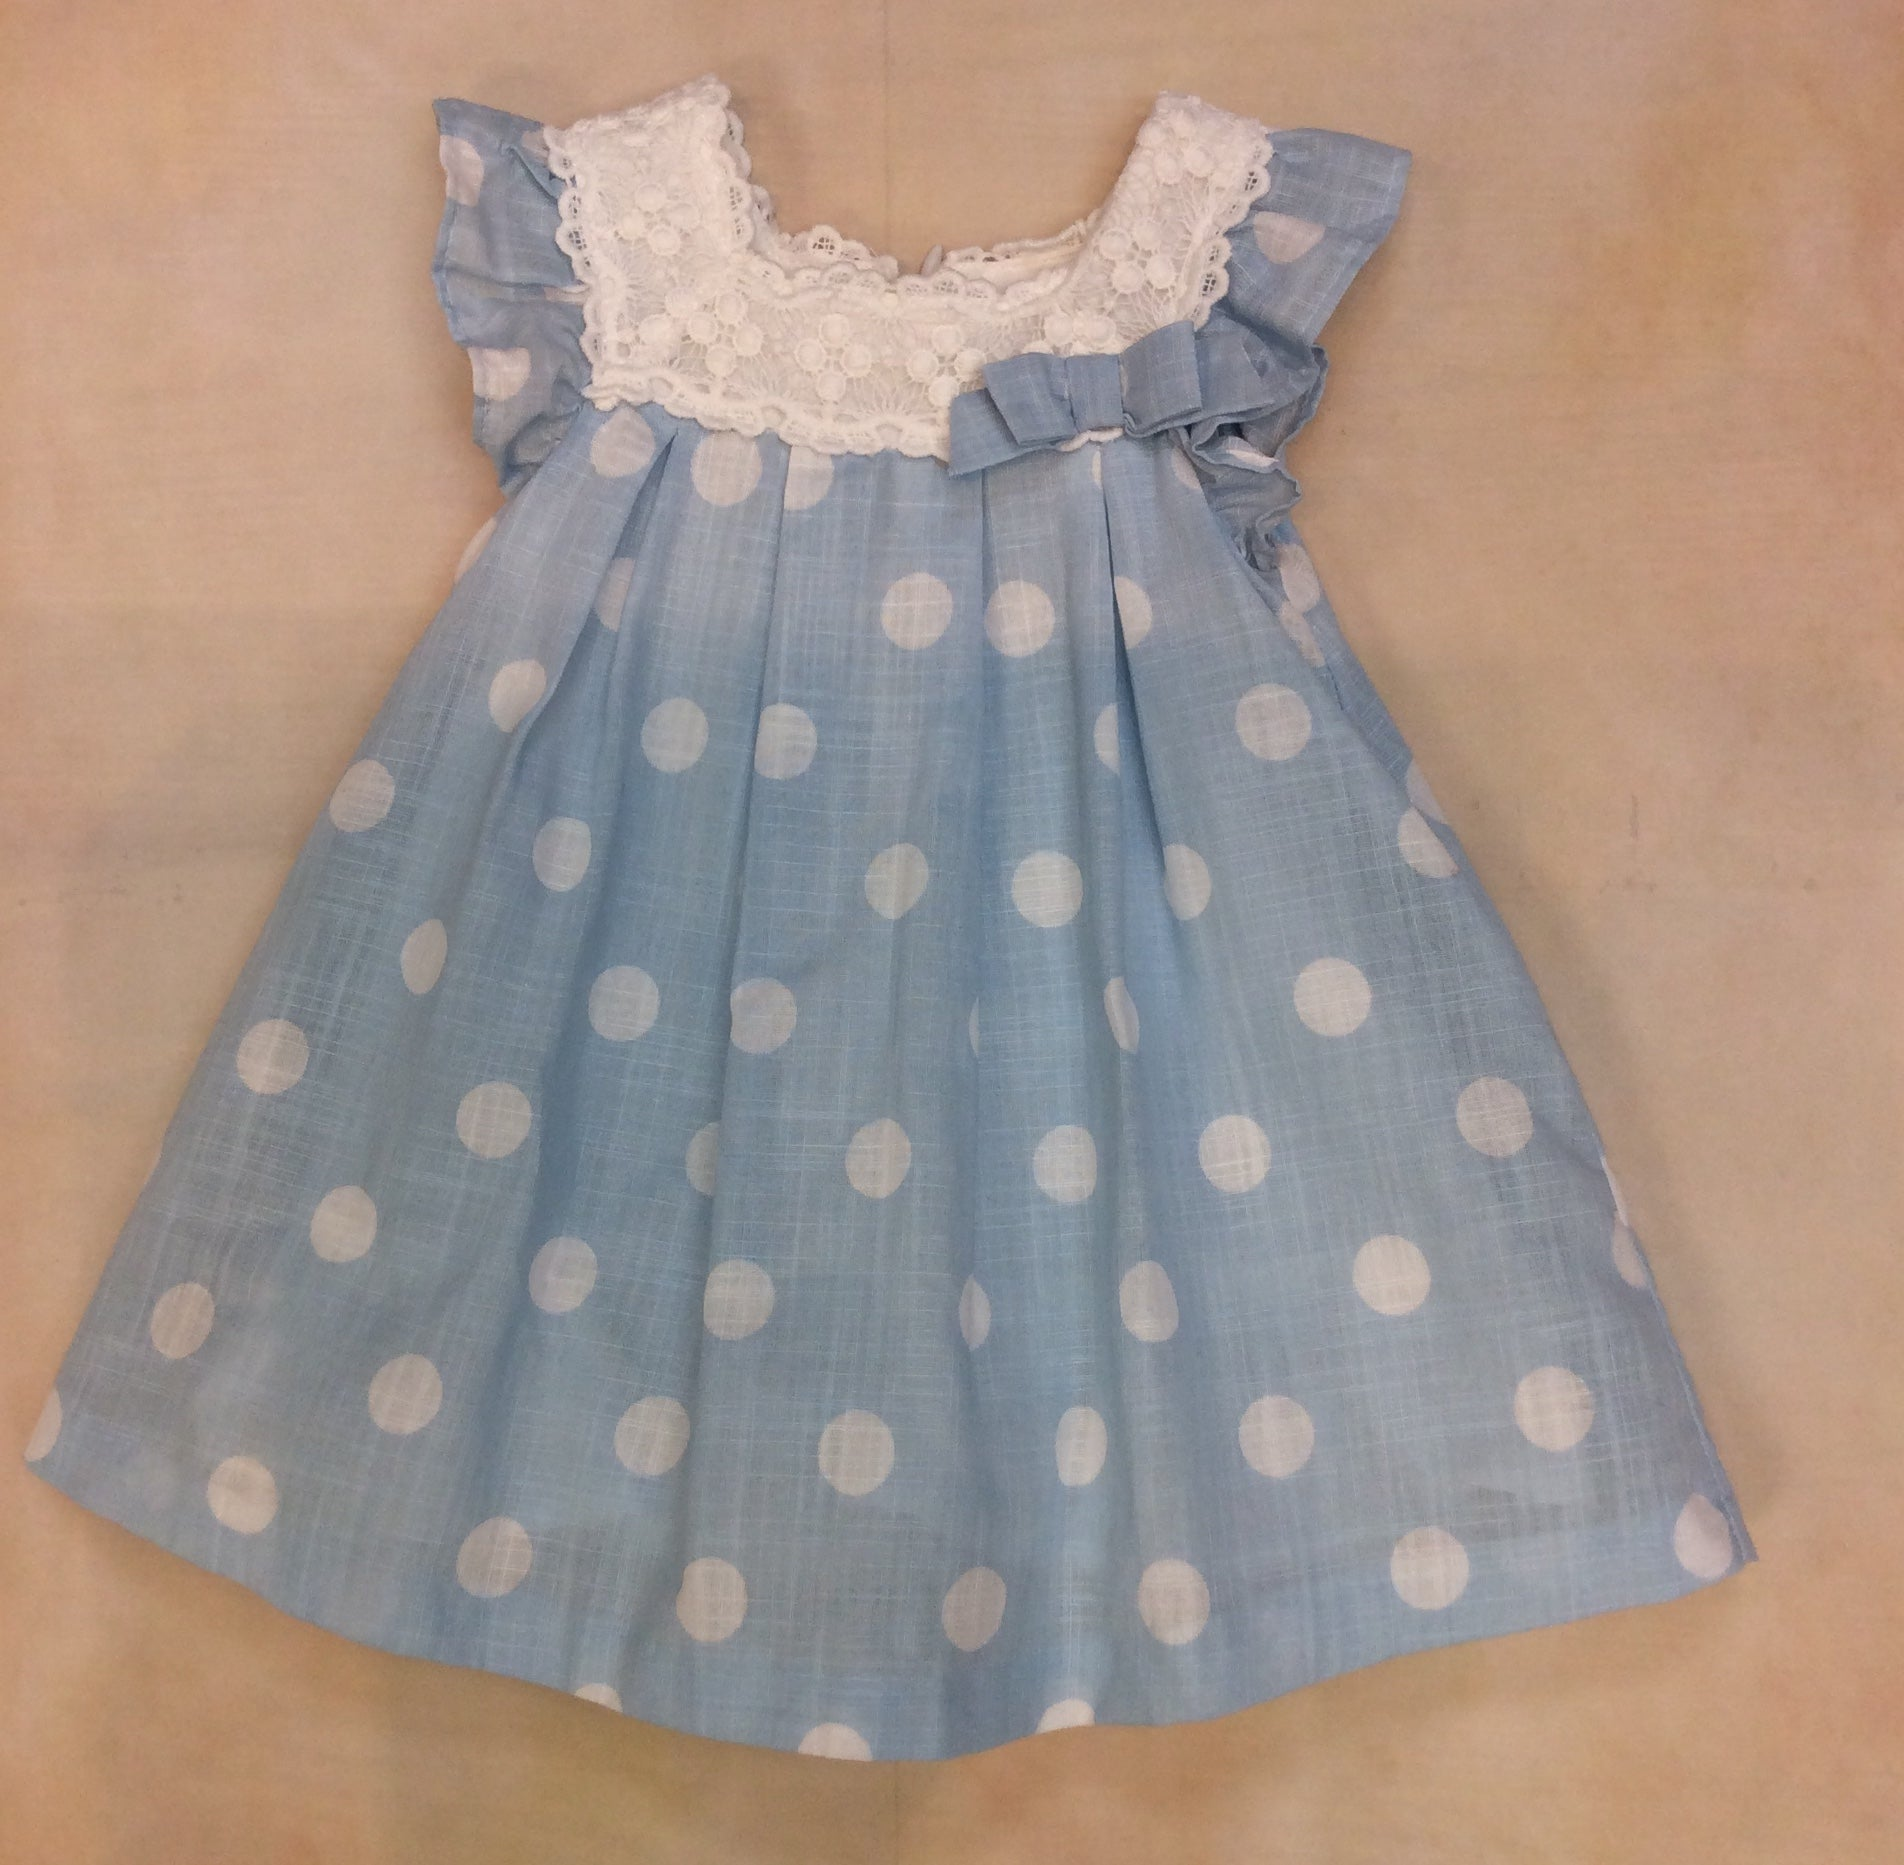 Polka Dot Dress 1871 - Nenes Lullaby Boutique Inc